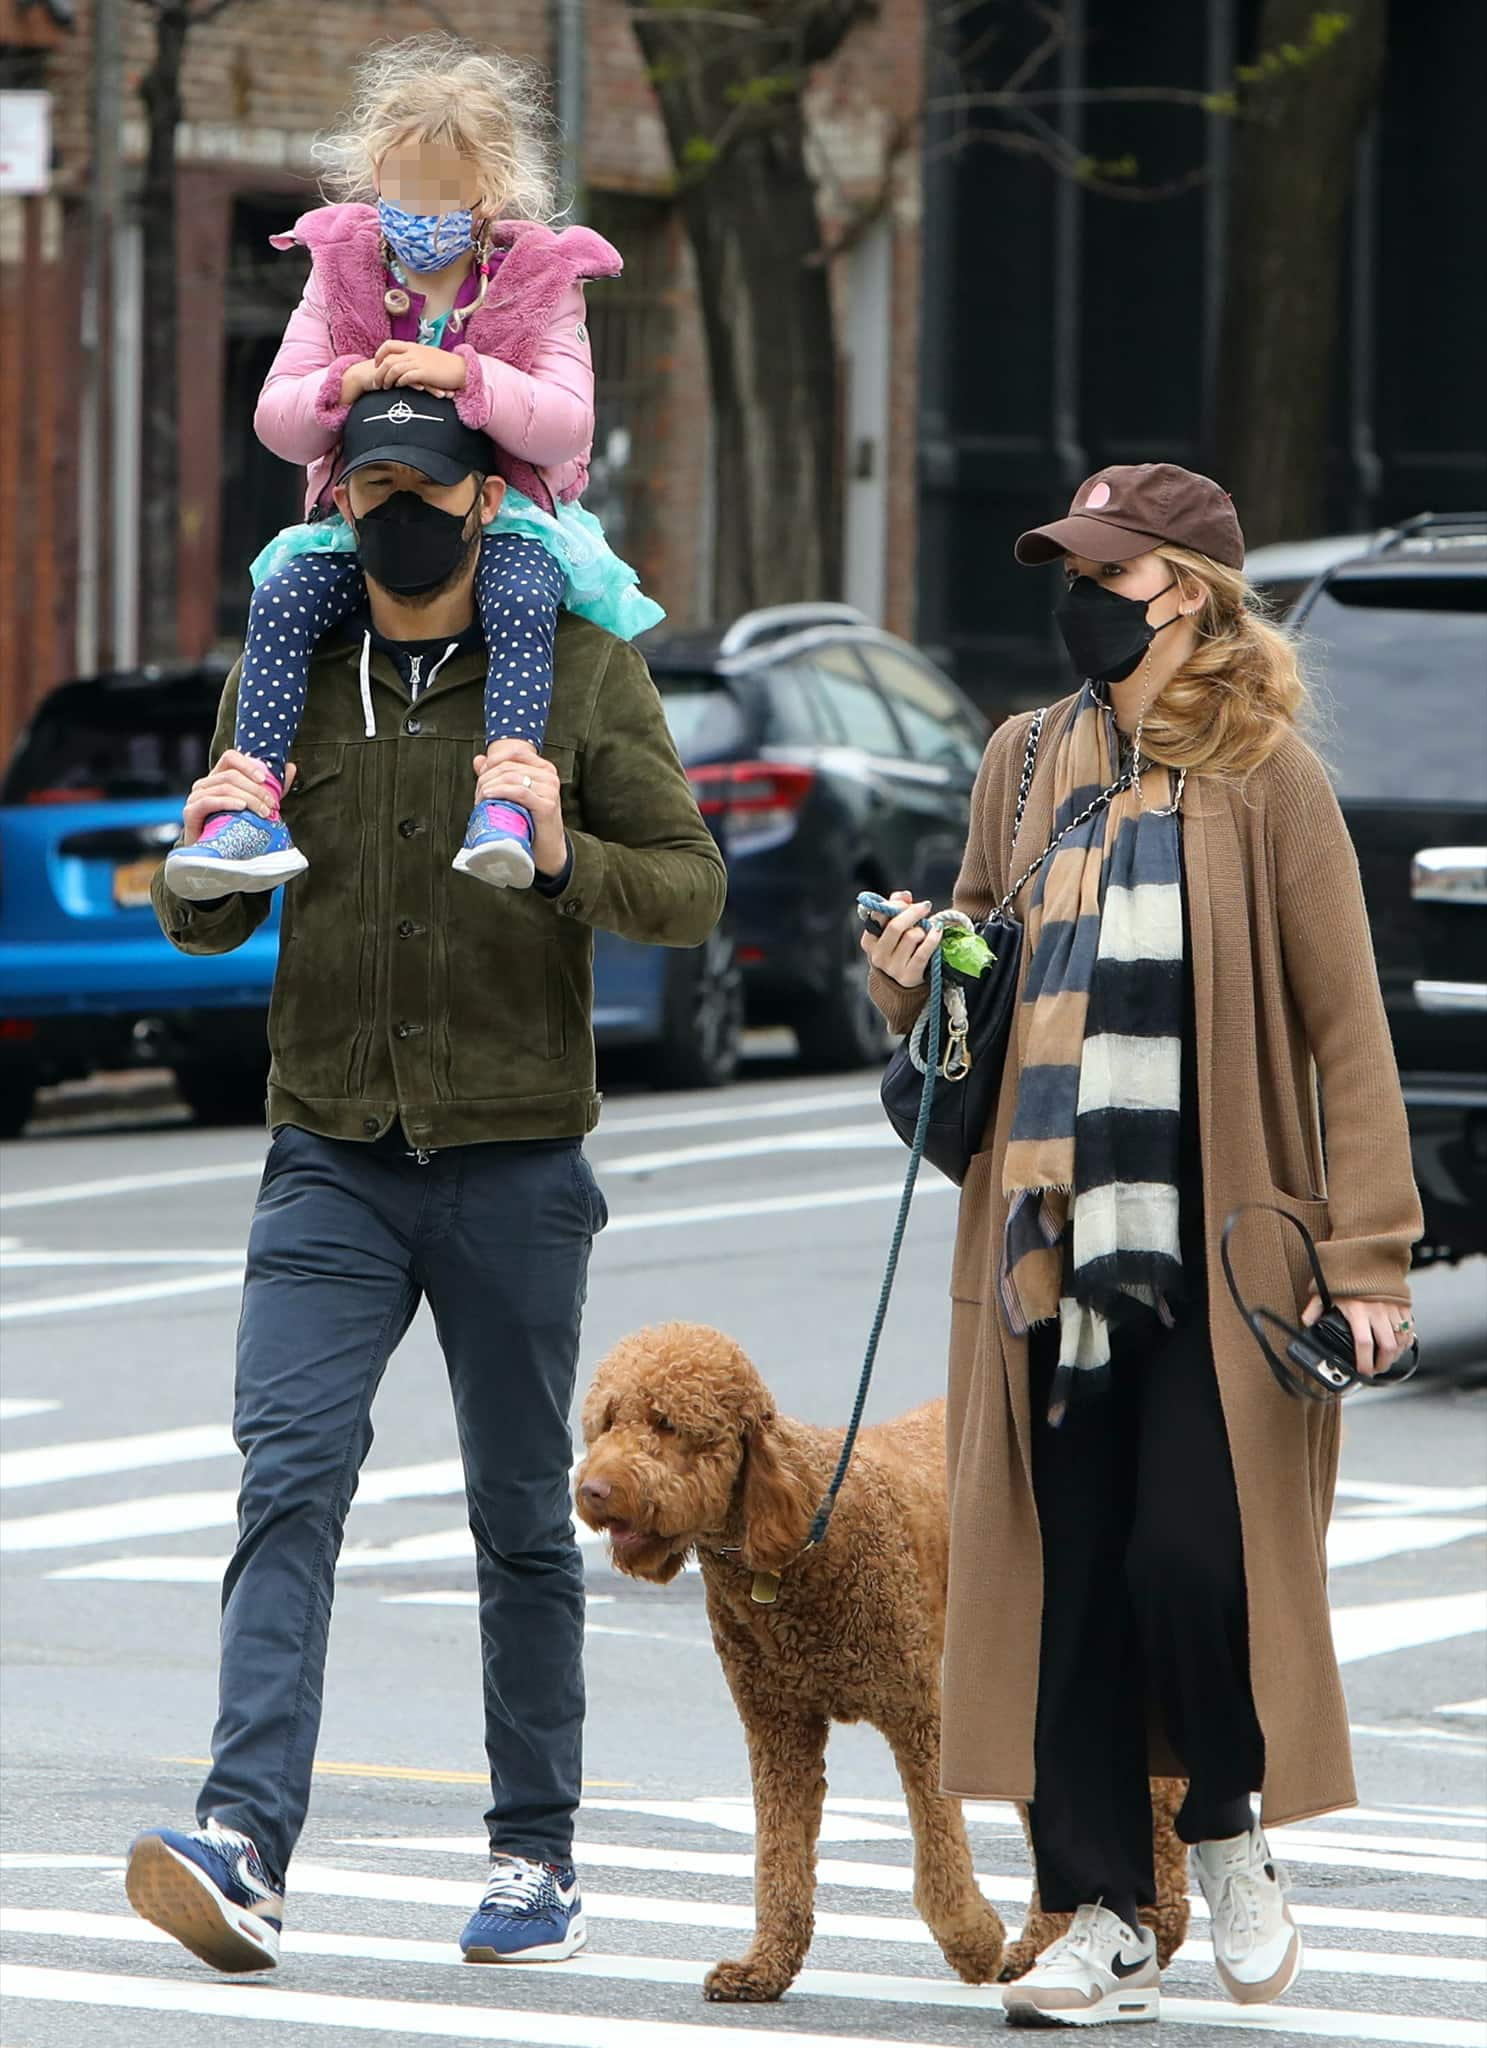 Ryan Reynolds and Blake Lively step out with daughter Inez and family dog in New York City on April 28, 2021